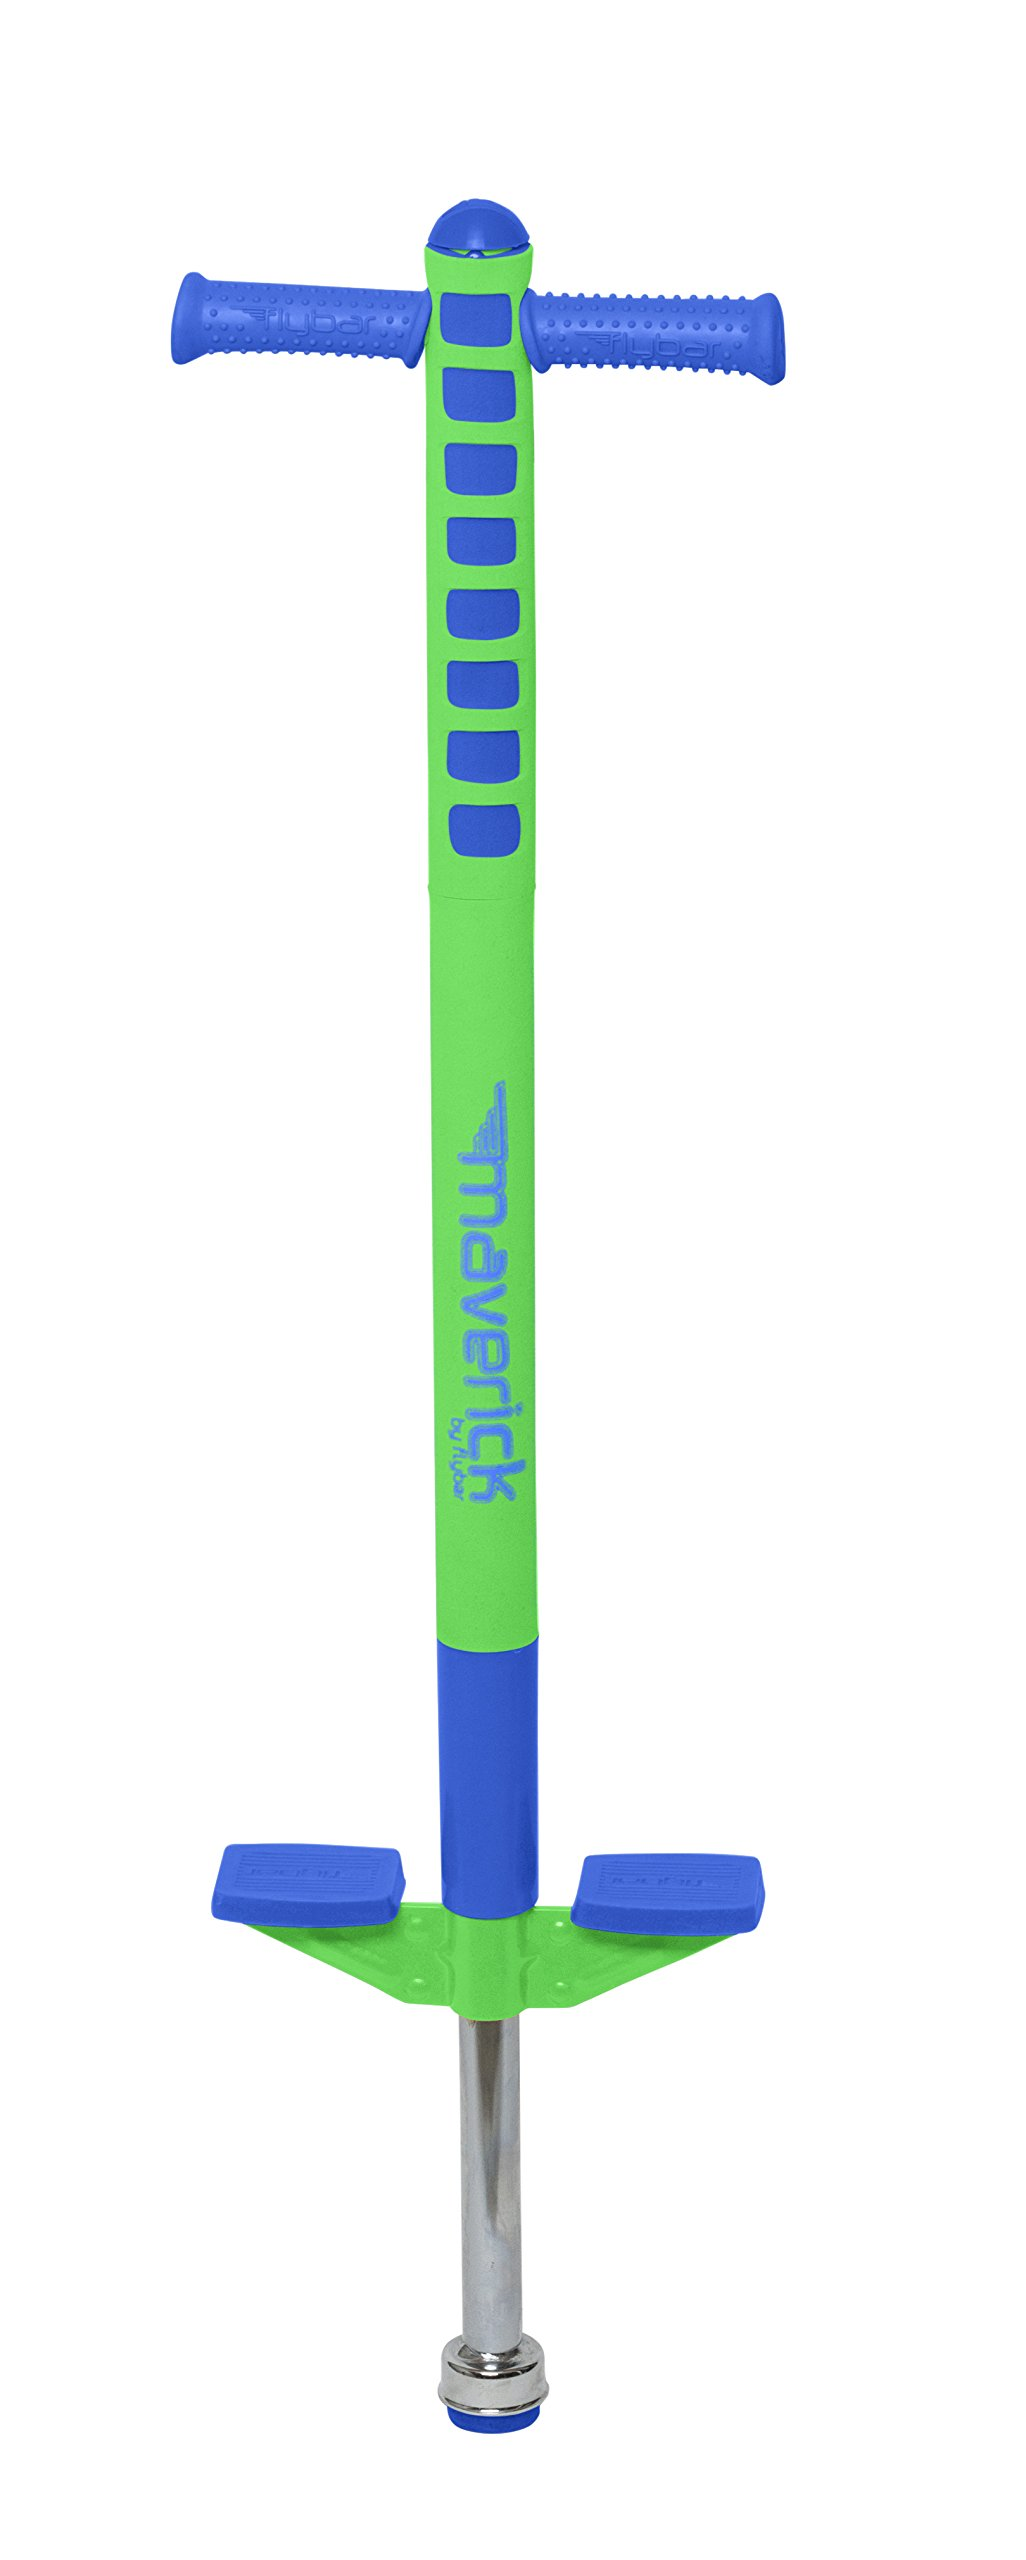 Flybar Limited Edition Foam Maverick Pogo Stick for Boys & Girls | Indoor/Outdoor Toy for Kids Ages 5-9 | Features NEW 'Rubber' Grip Handles | Non-Slip Foot Pegs for Safety - (Blue/Lime, 1 Pack)